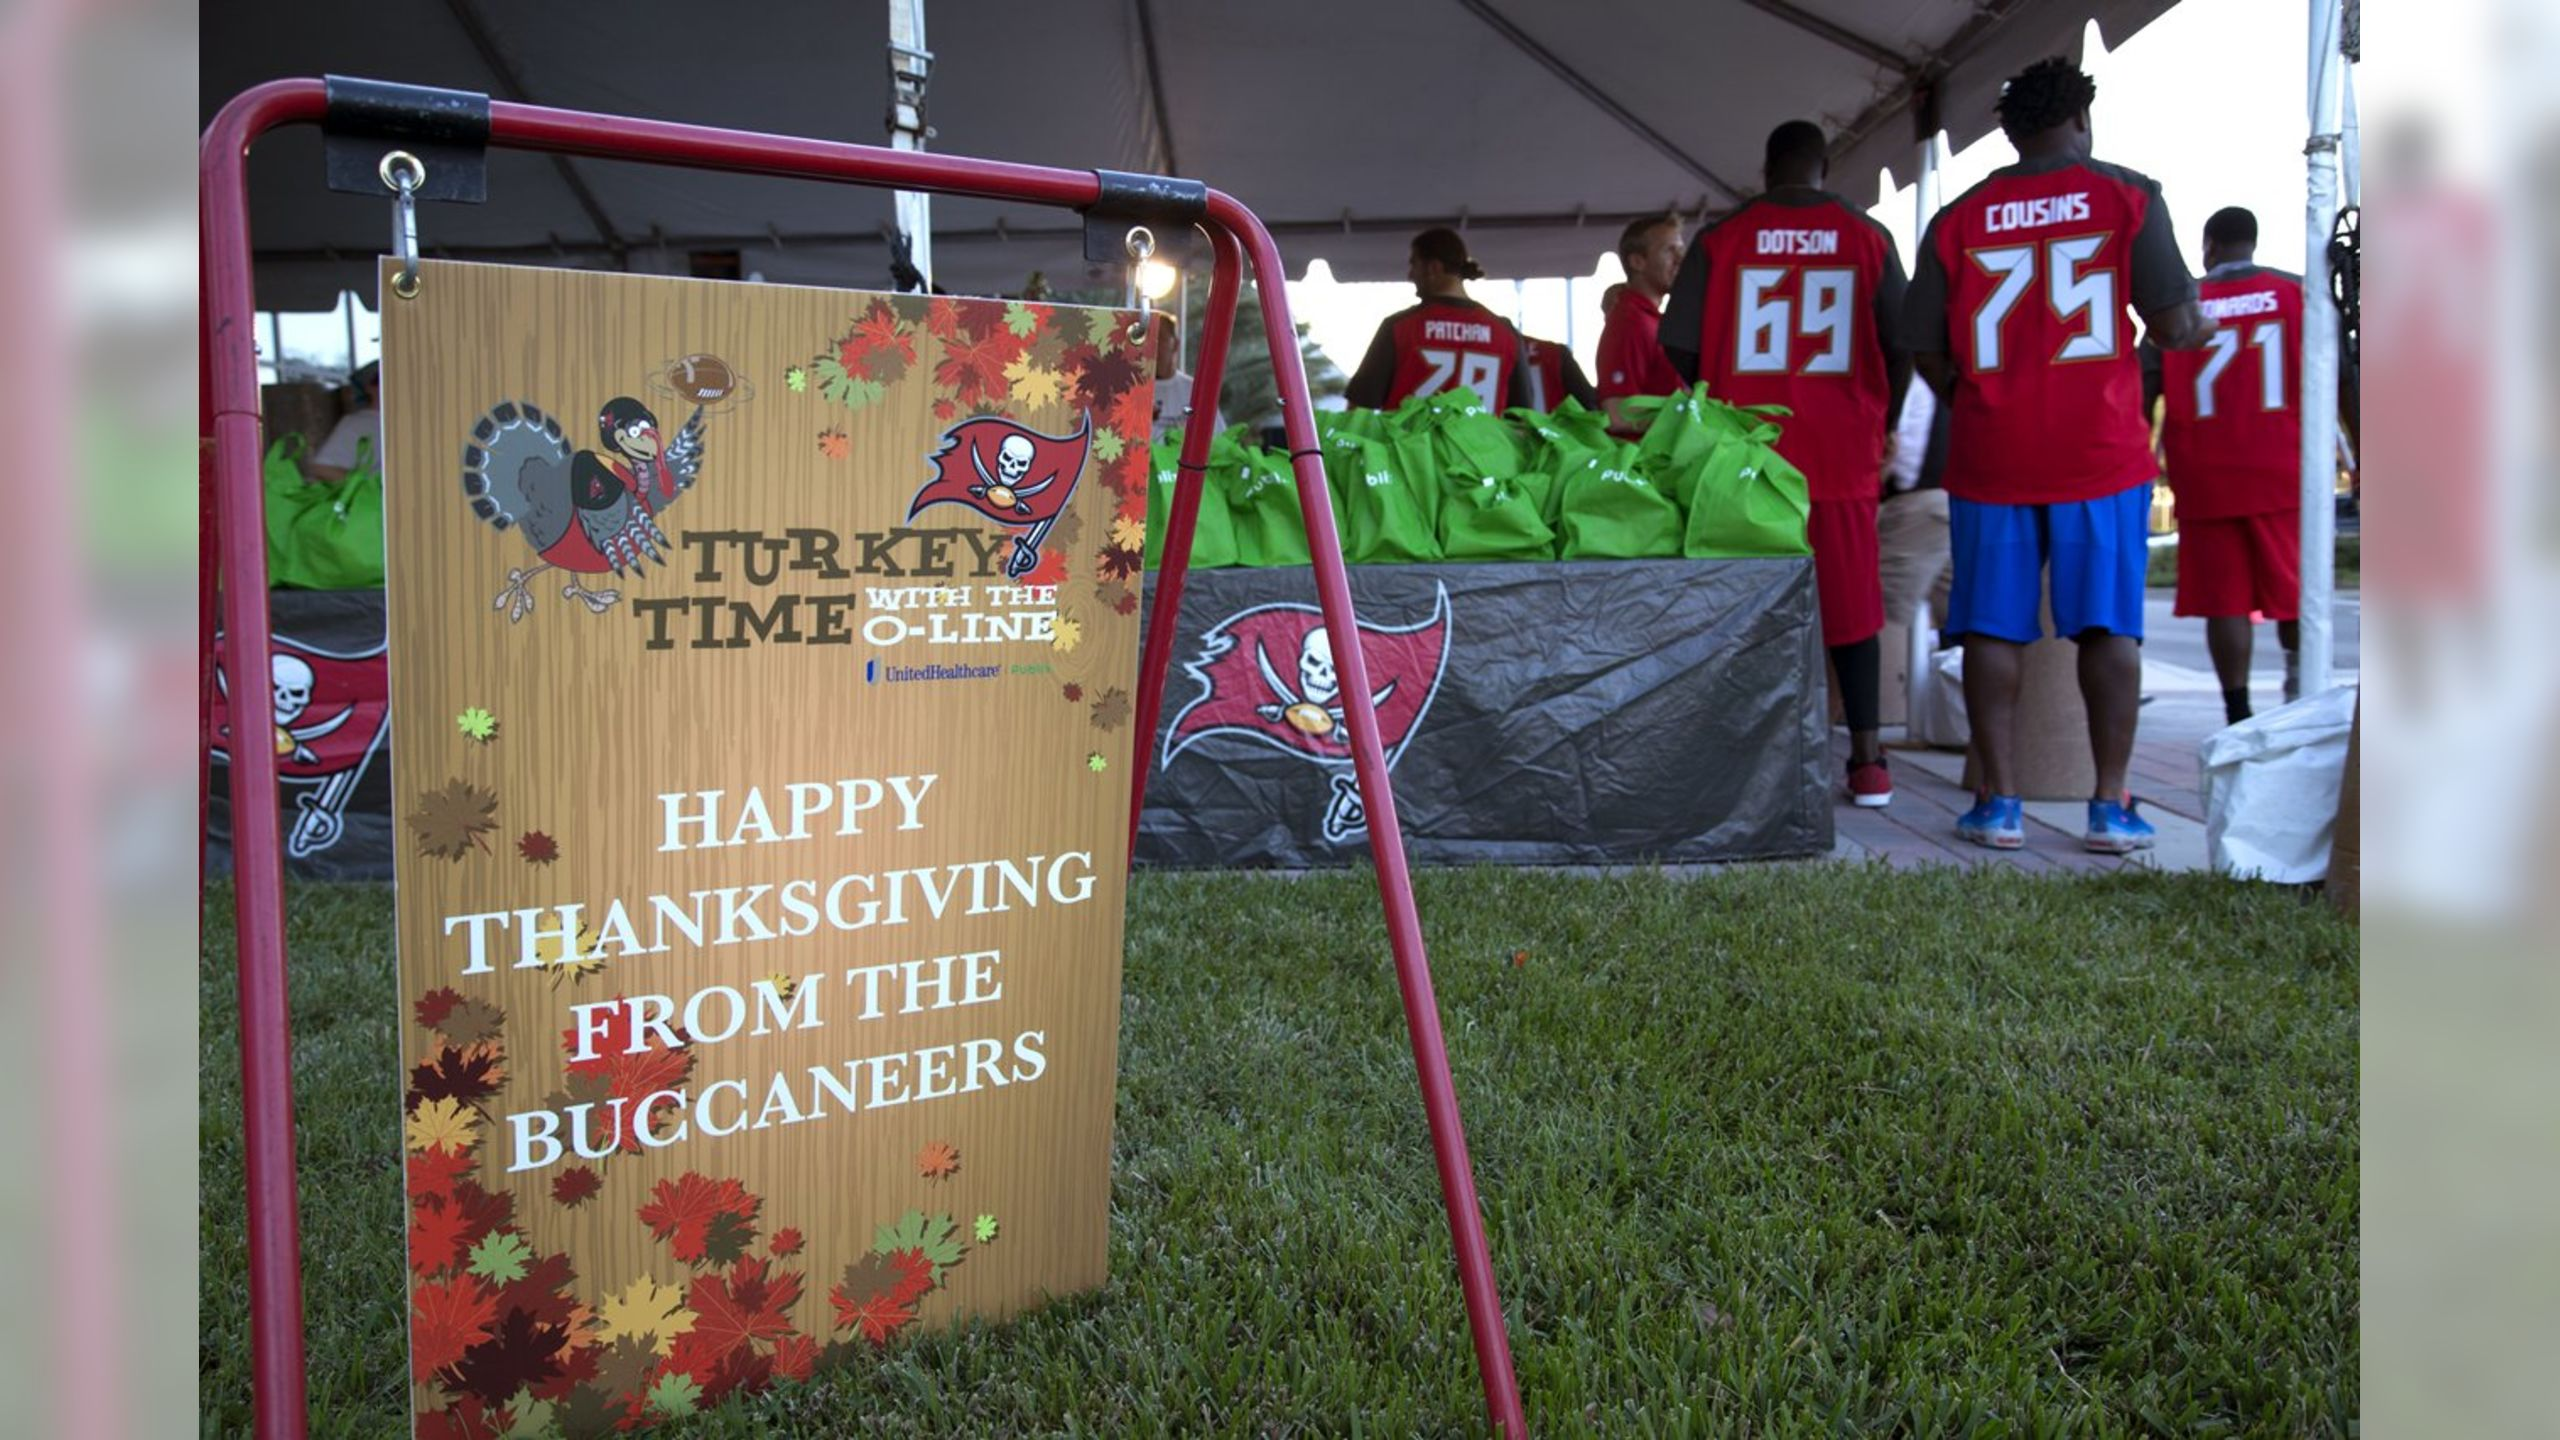 The Tampa Bay Buccaneers O-Line provides Thanksgiving meals to local families